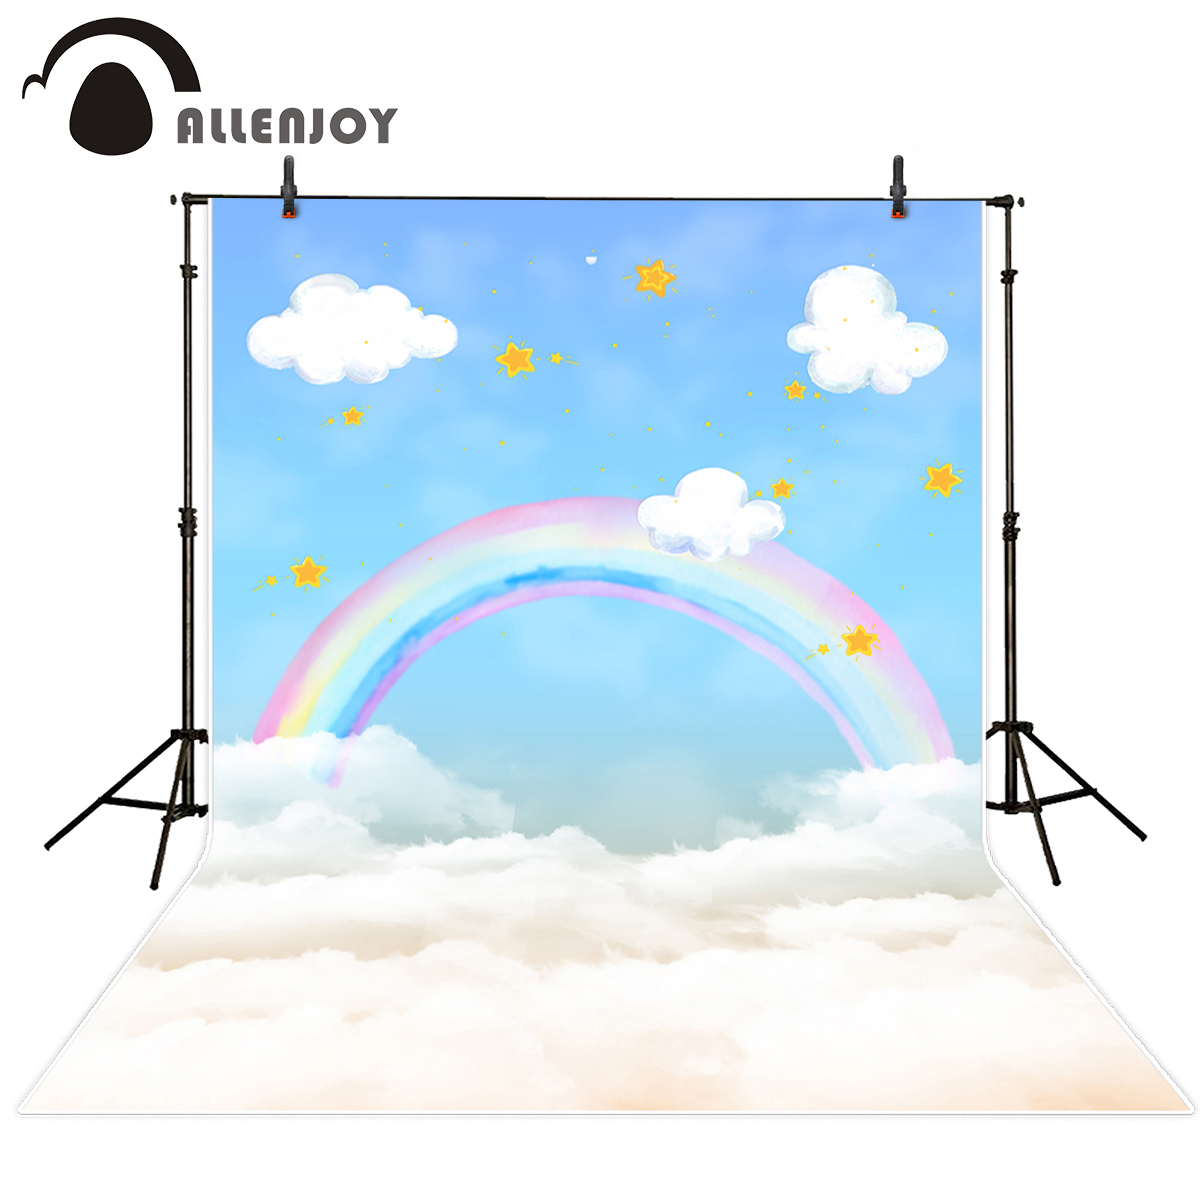 Allenjoy Vinyl photography The sky Stars Gold Rainbow cloud photography backdrop personal custom Partner name backdrop ваза pavone парочка кошек цвет черный высота 25 см jp 670 11